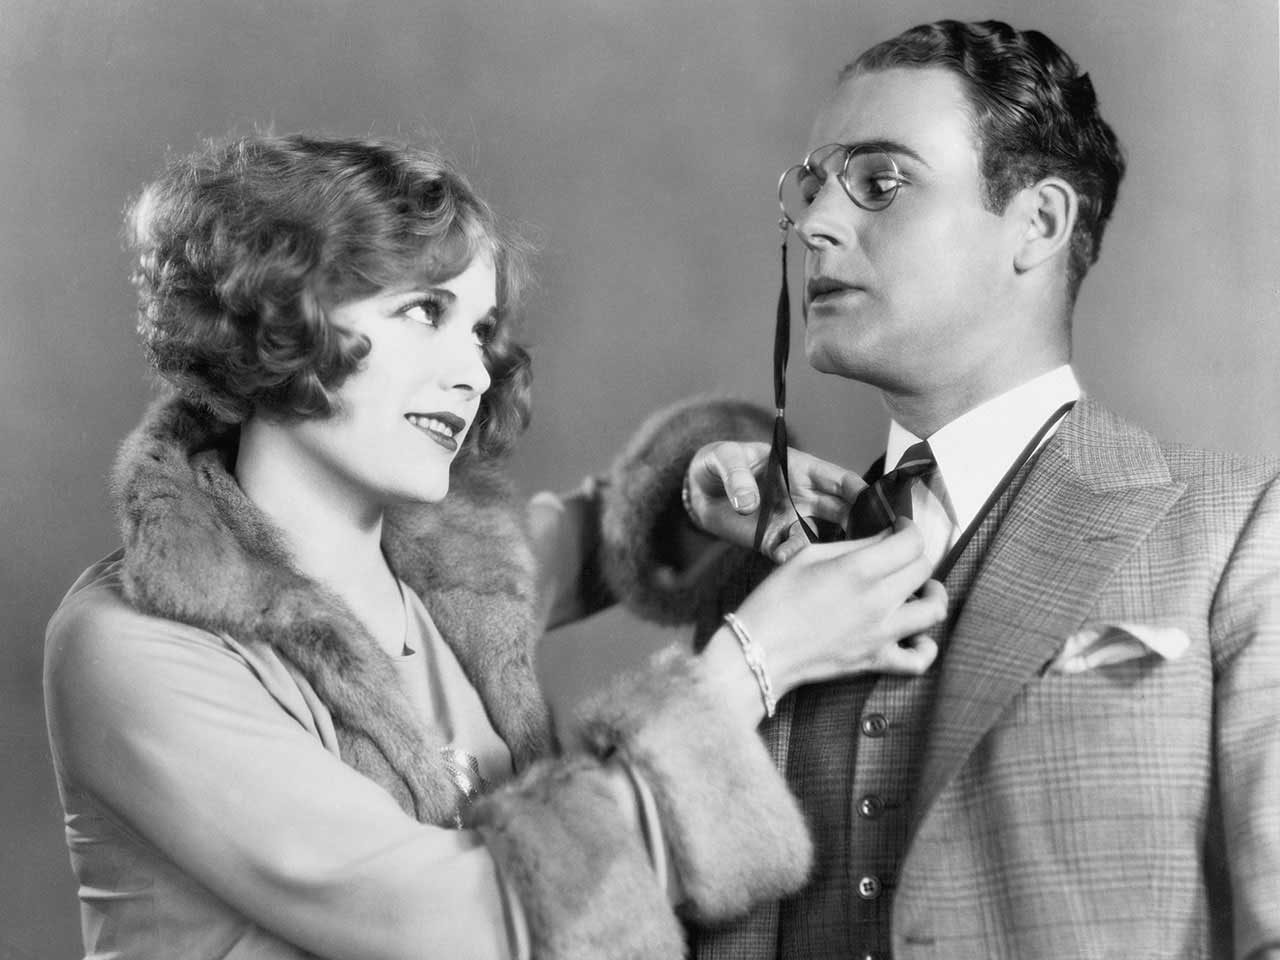 Vintage shot of woman straightening a man's tie